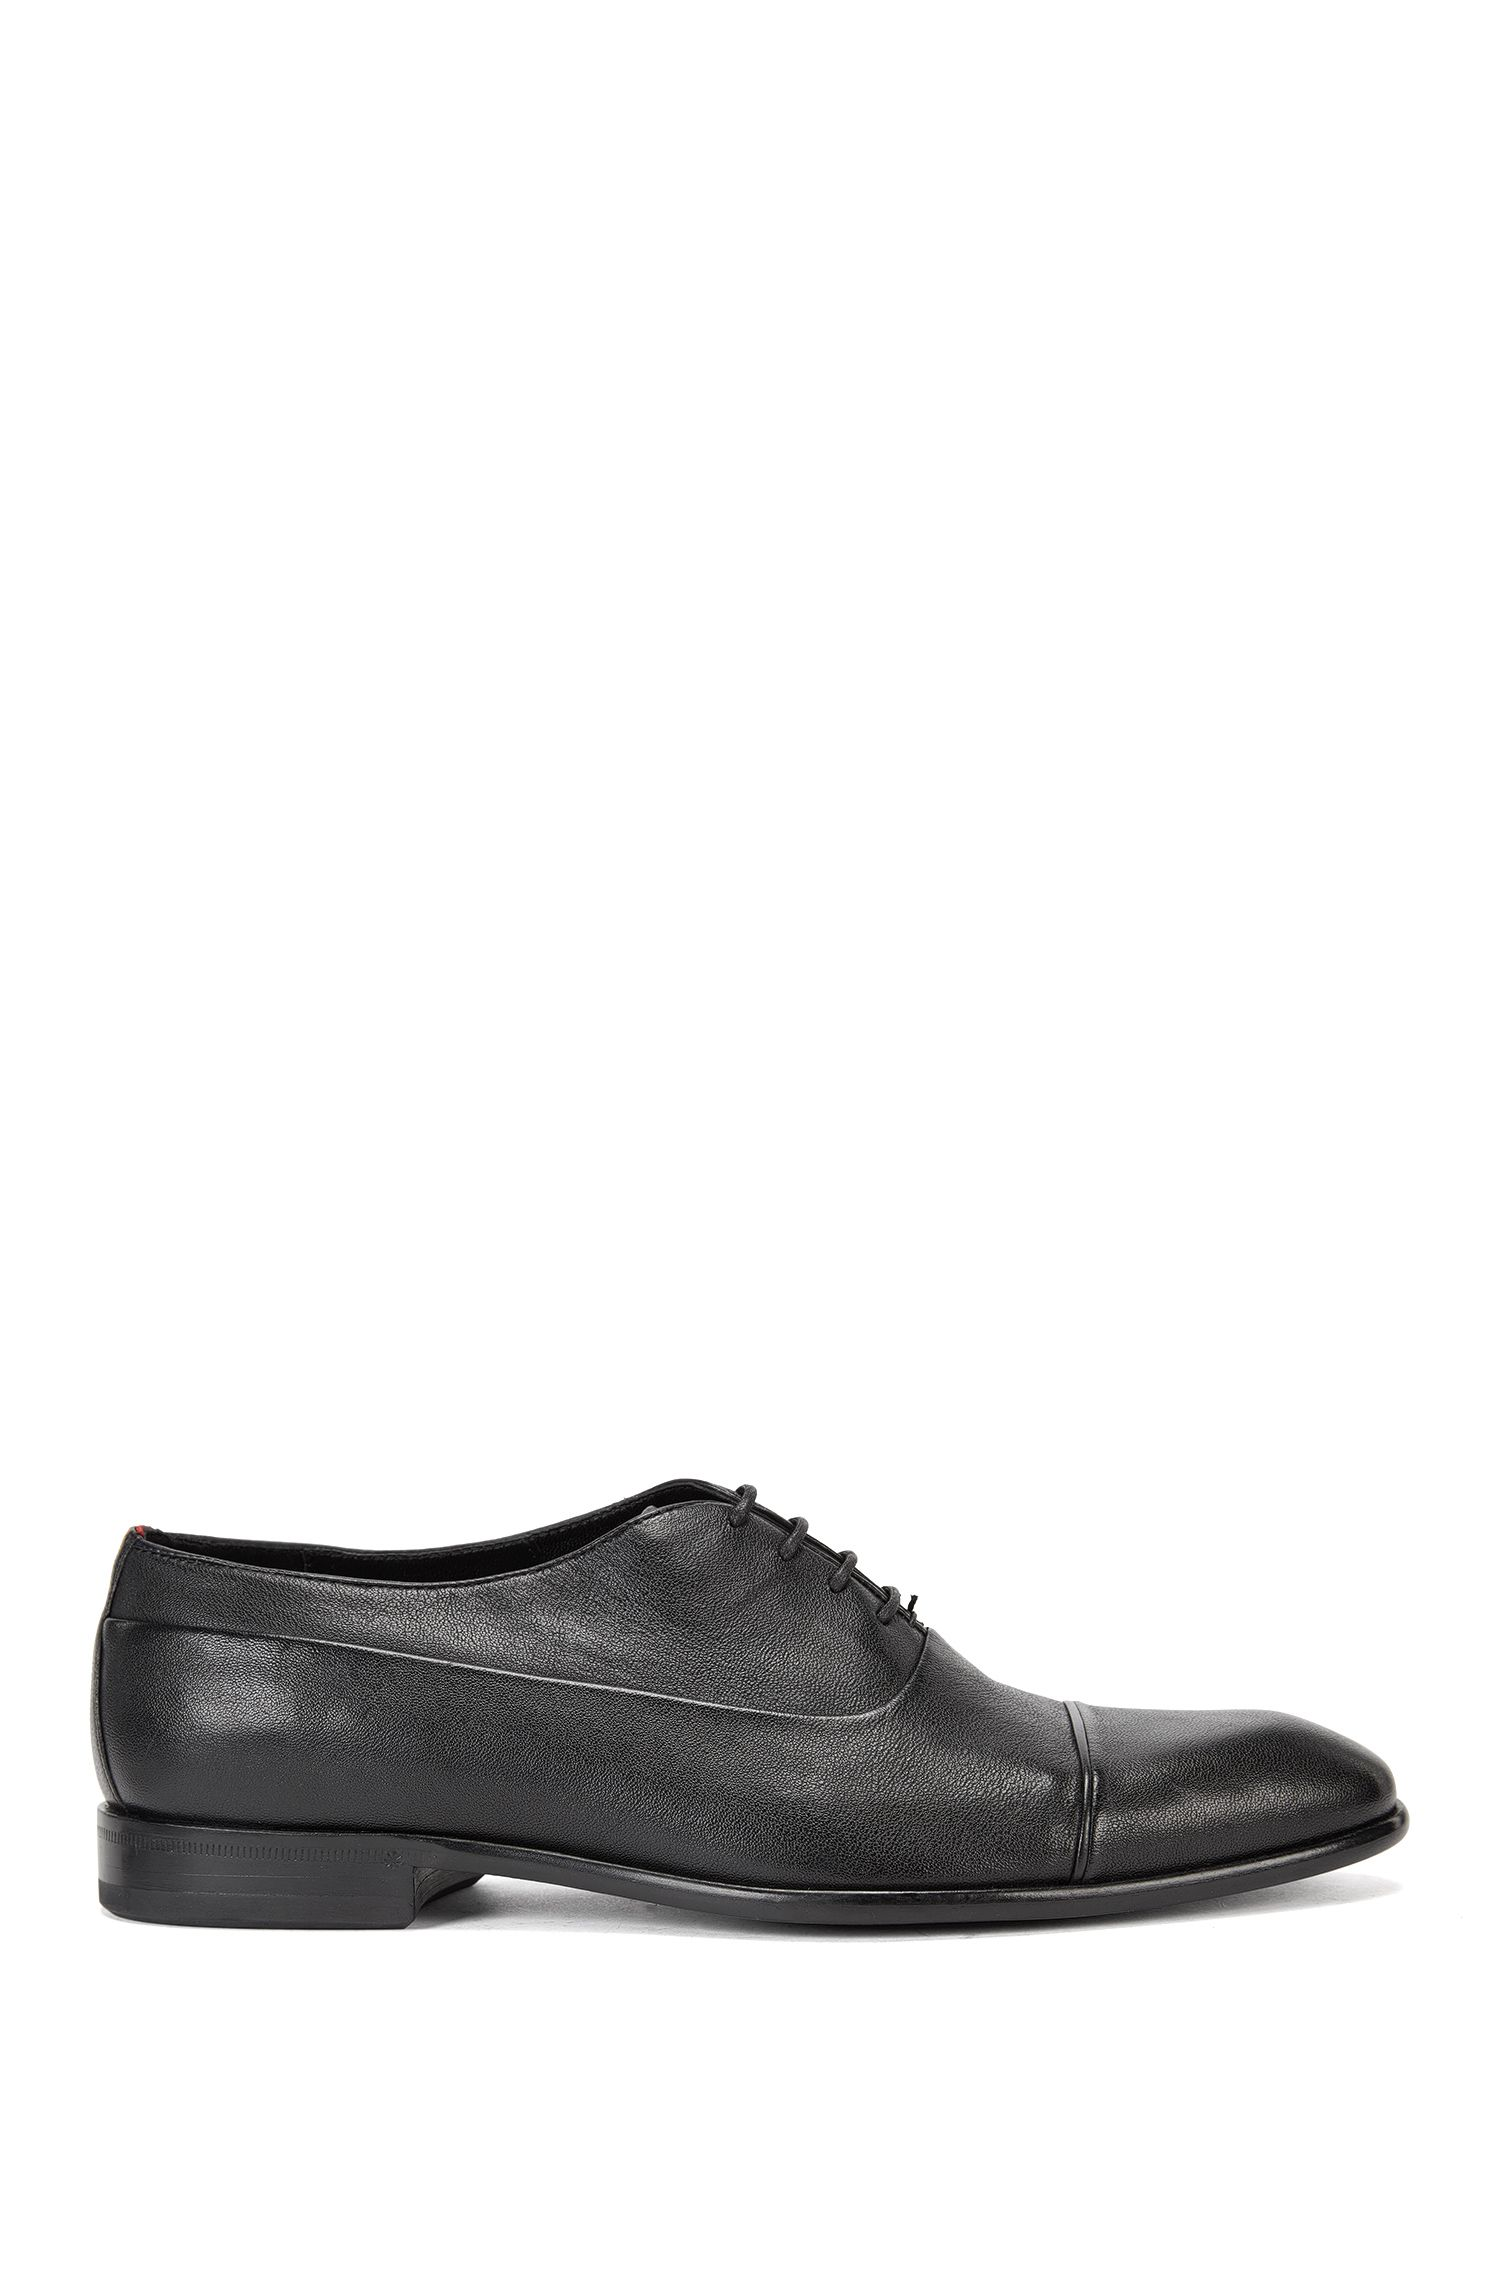 Leather Oxford shoes with piping detail